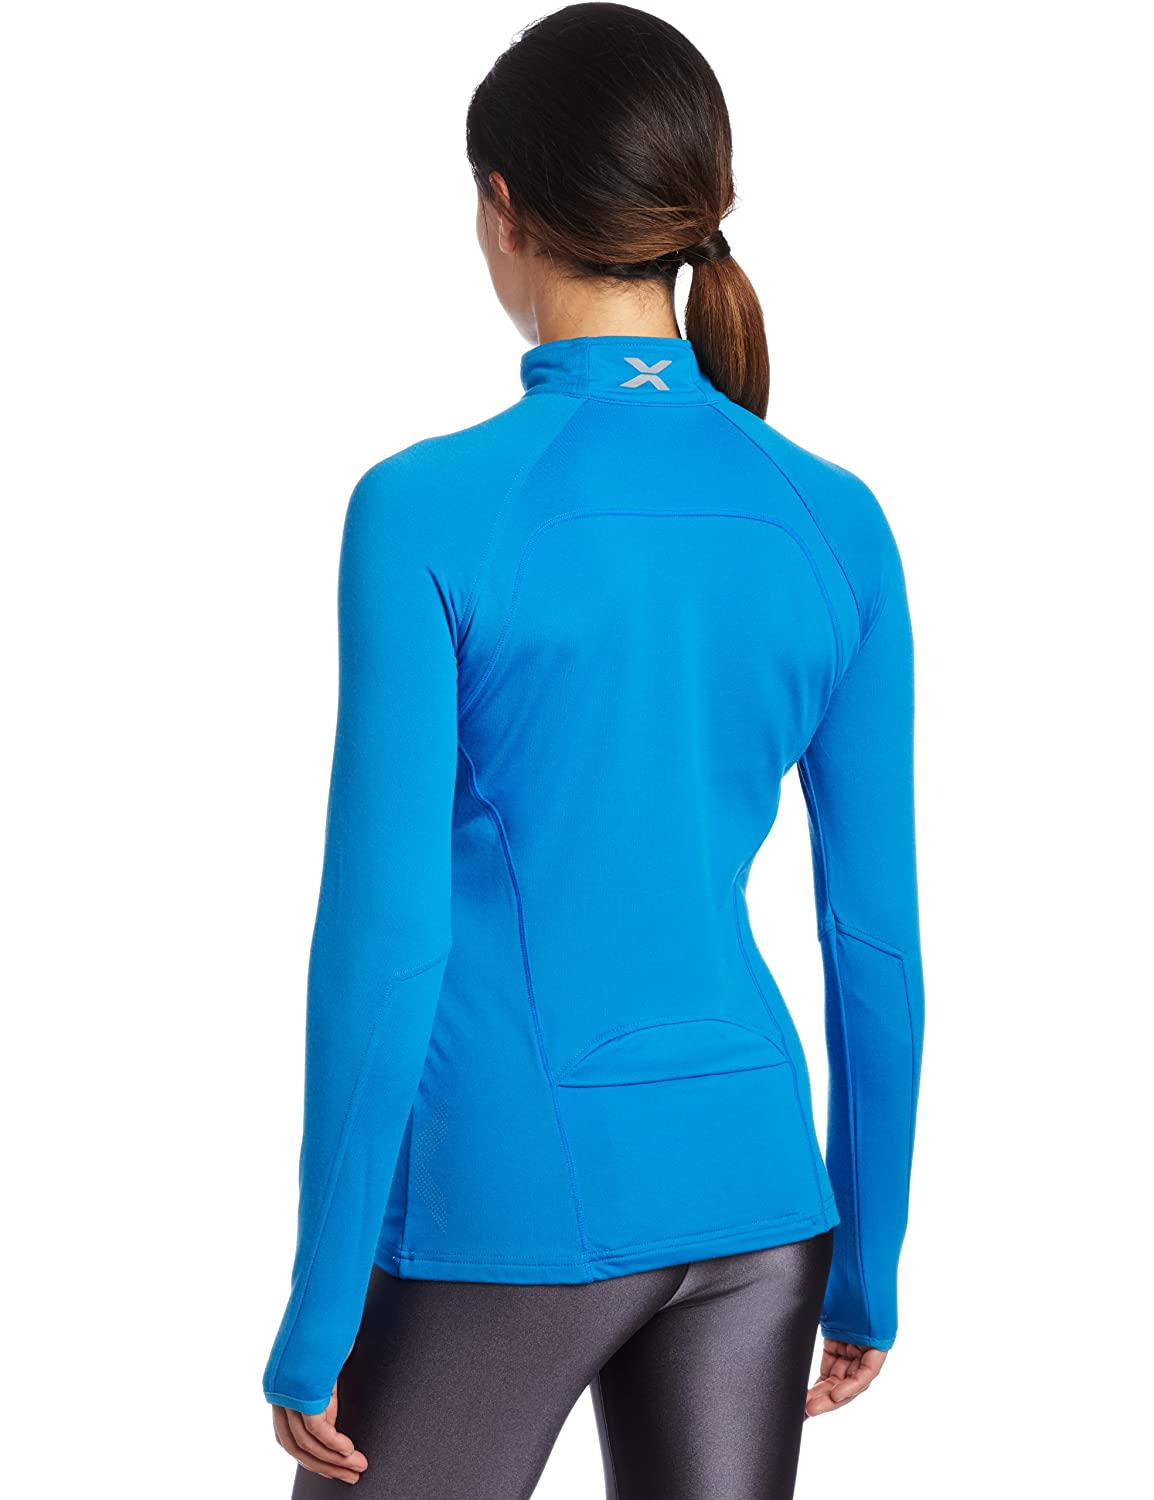 2XU Women's Raven Thermal Base Layer